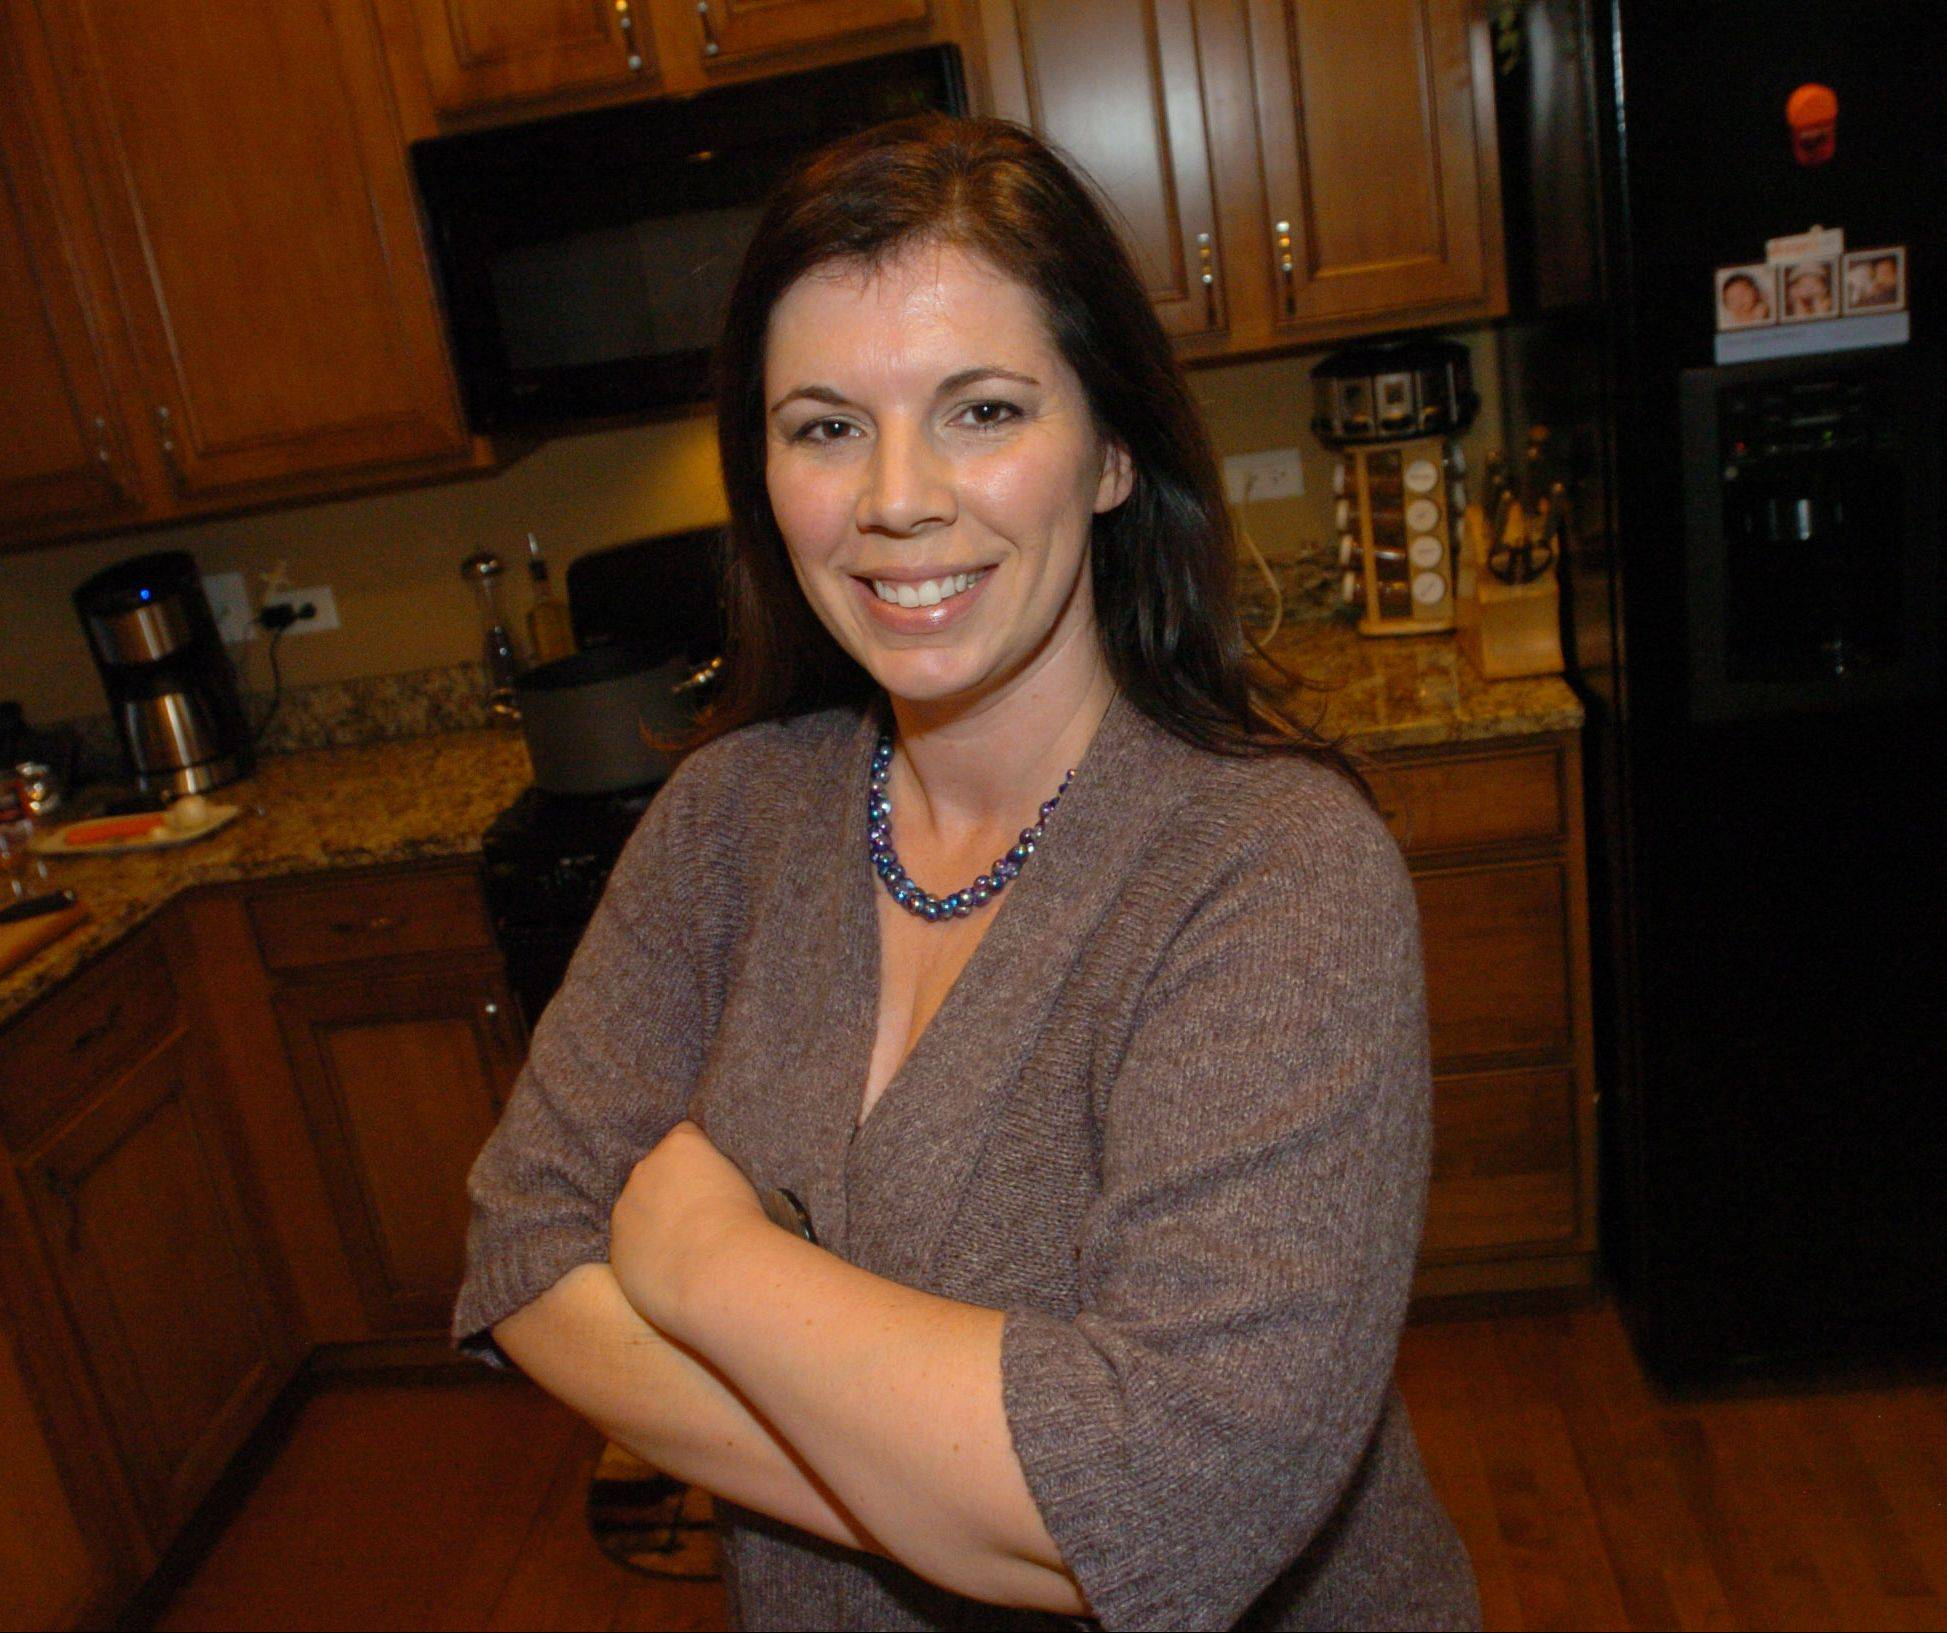 France Cevallos cooks Thanksgiving meals twice each fall. In October she marks the holiday with family from her native Canada, and next week she'll plan a feast on the U.S. day of celebration.